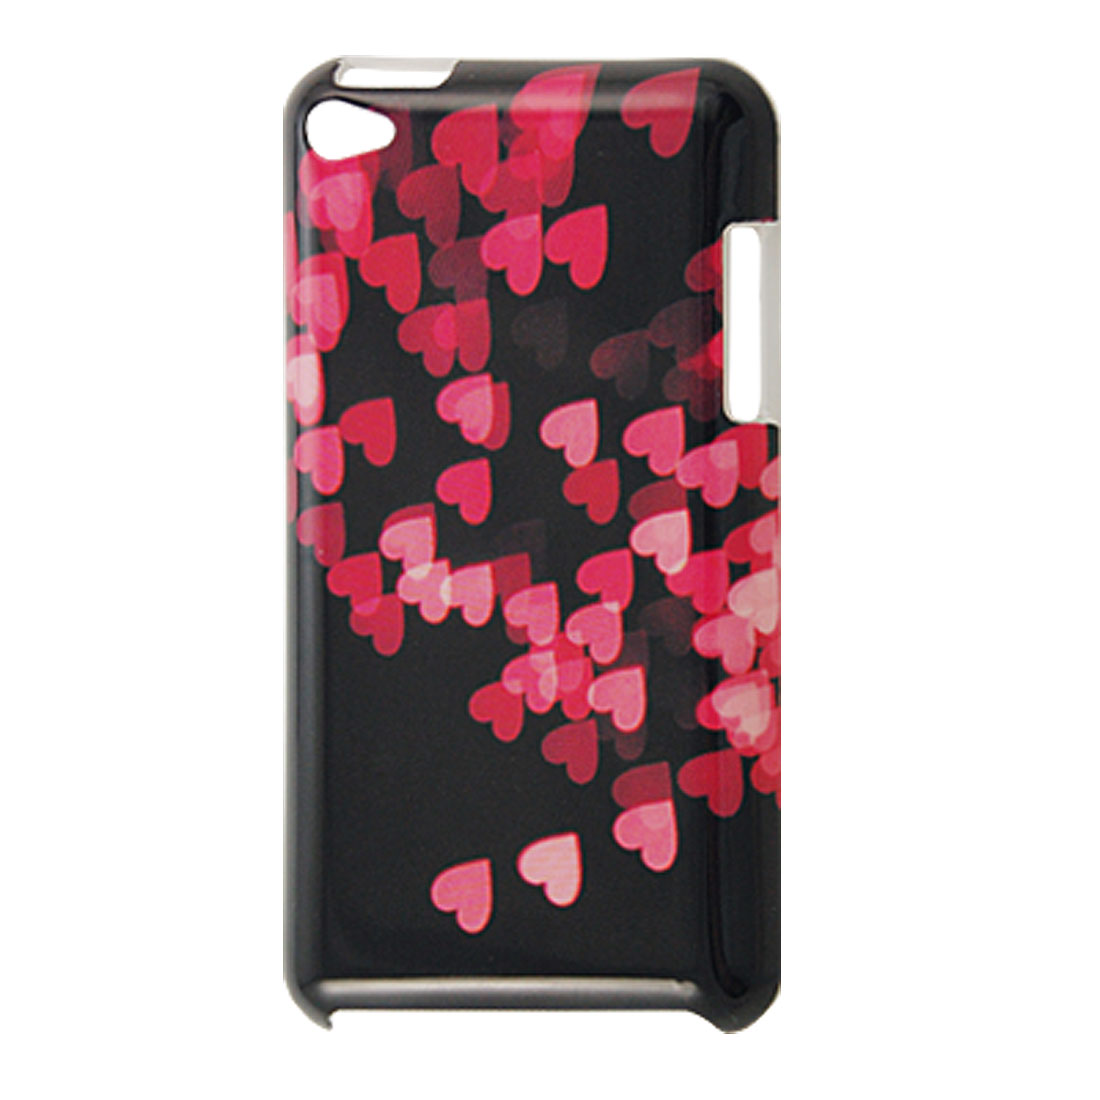 Pink Hearts Hard Plastic IMD Black Back Case for iPod Touch 4G